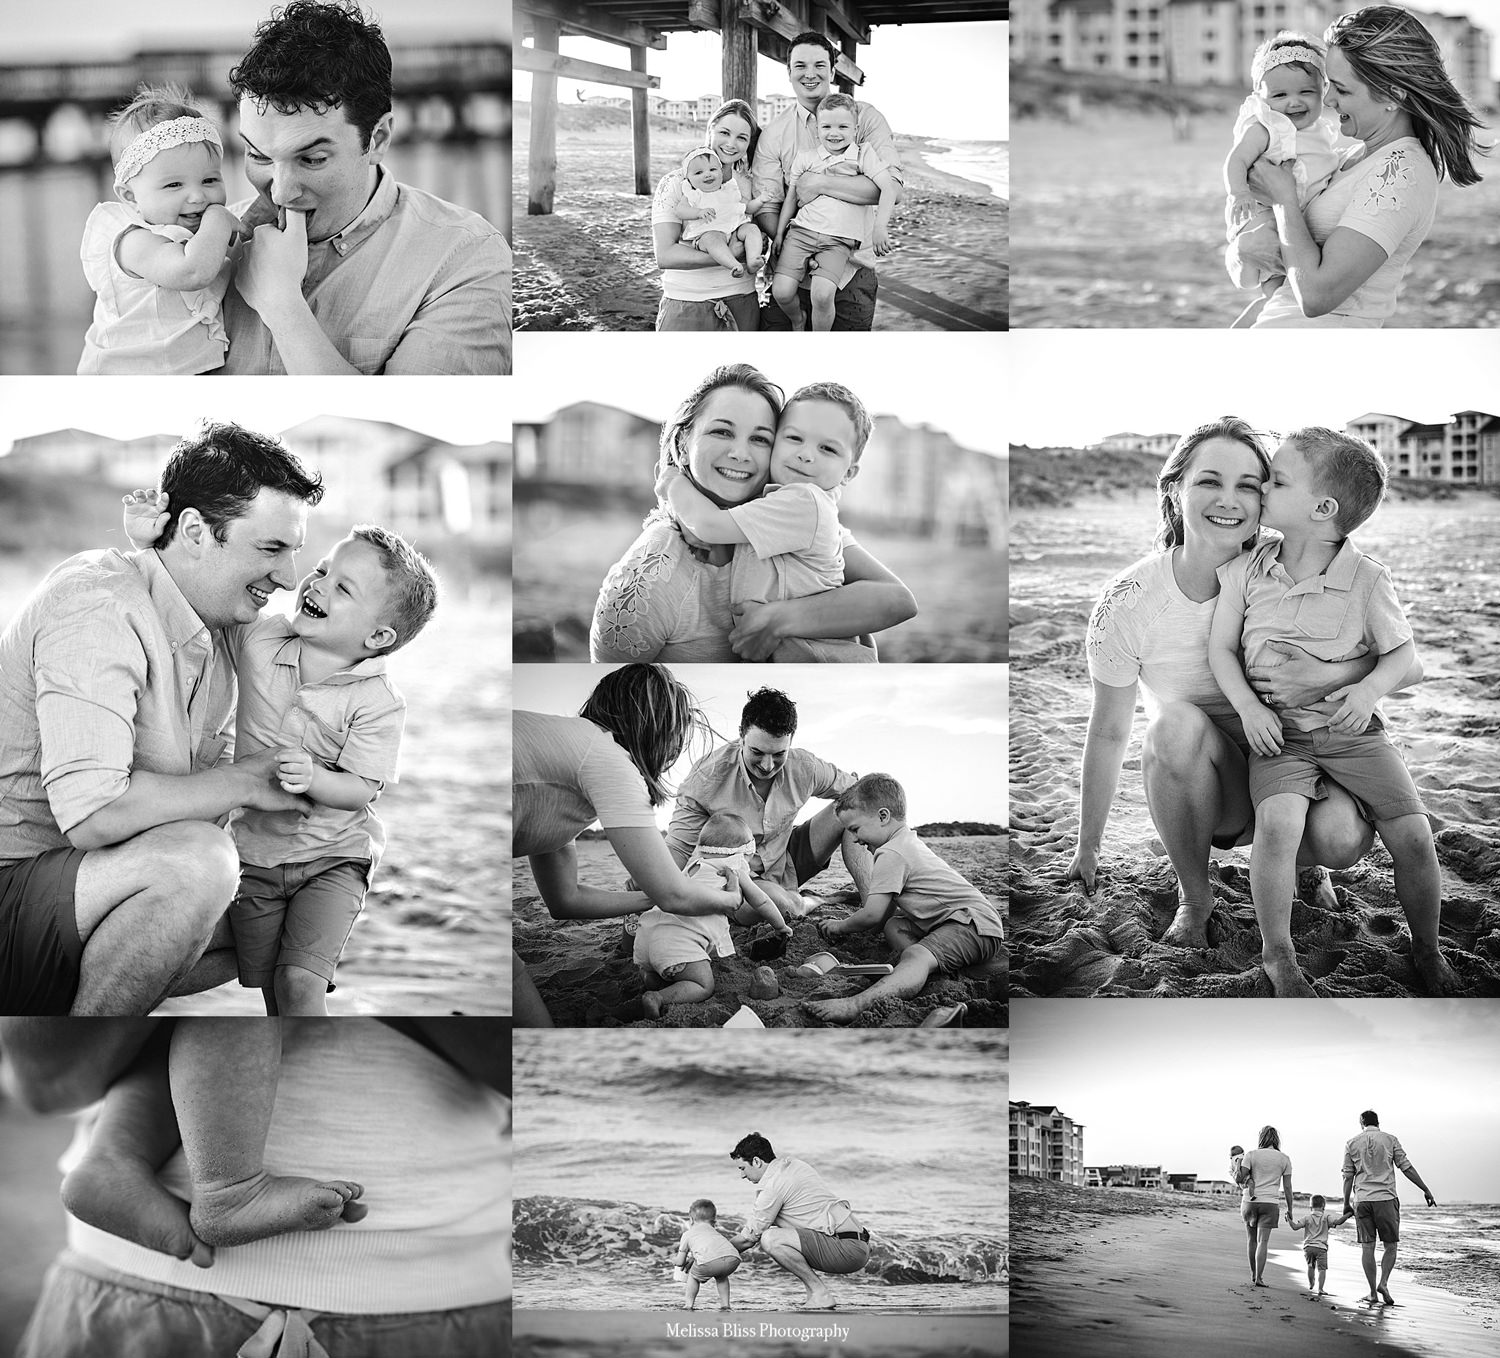 sandbridge-family-pictures-melissa-bliss-photography-virginia-beach-family-photographer.jpg